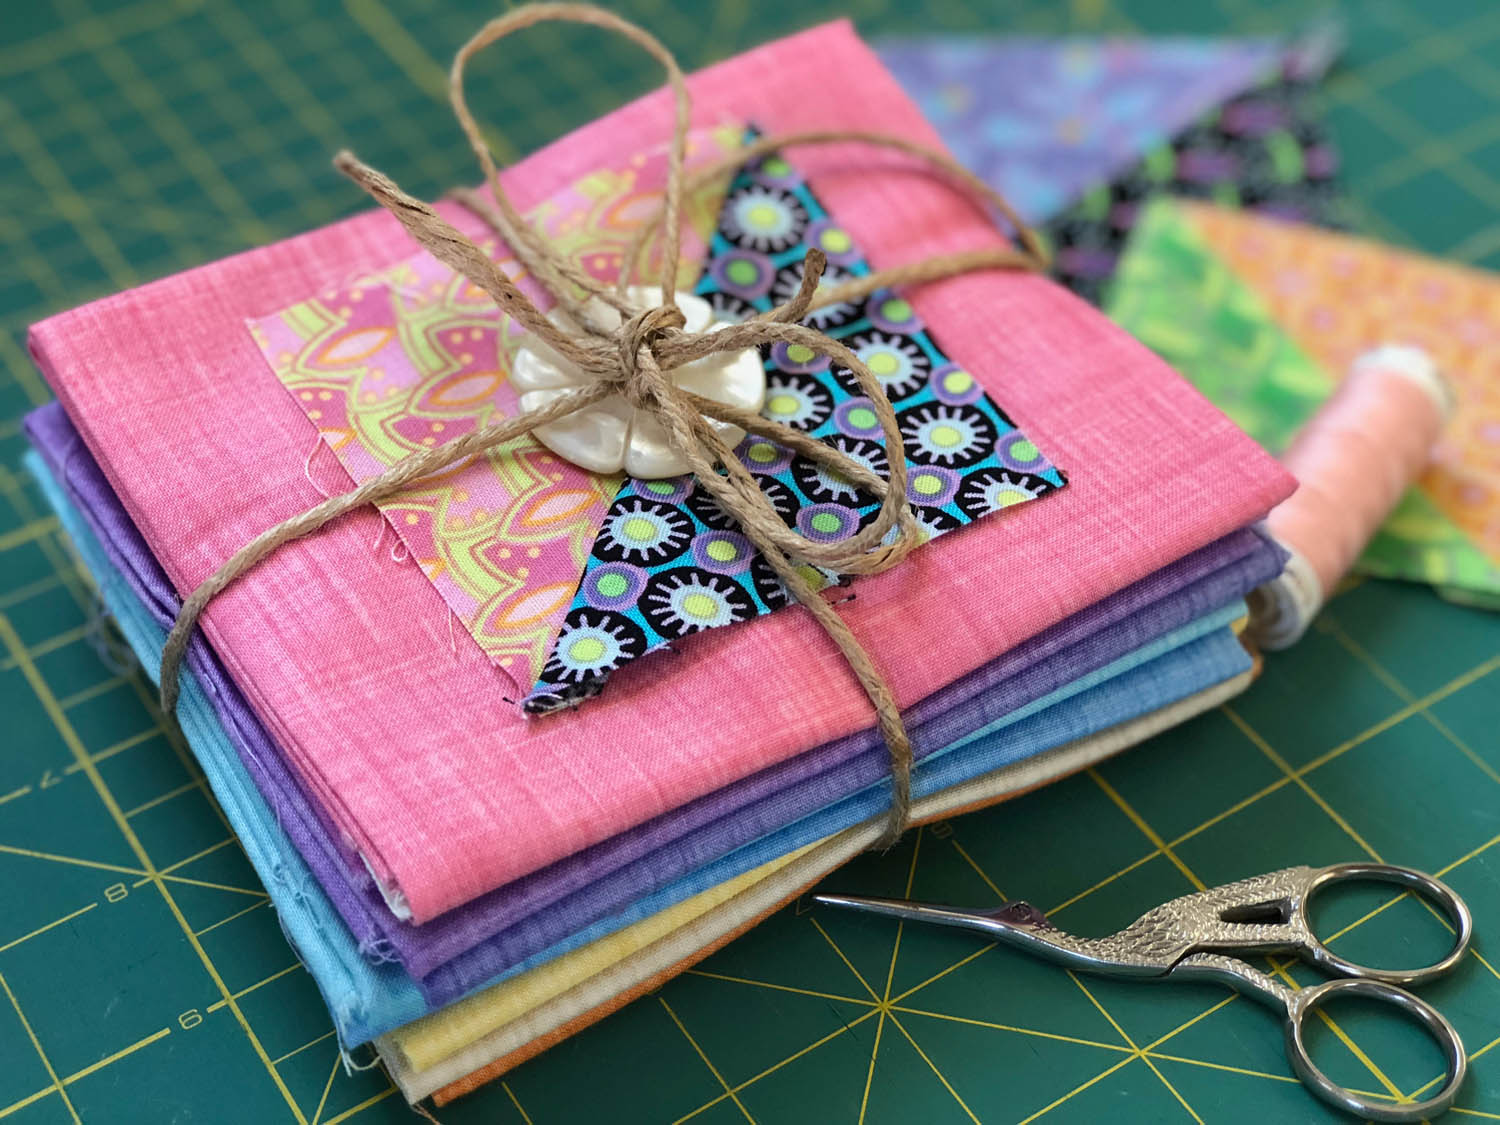 5a-quilting-fat-quarters-folded-and-bundled-for-gift-giving.jpg